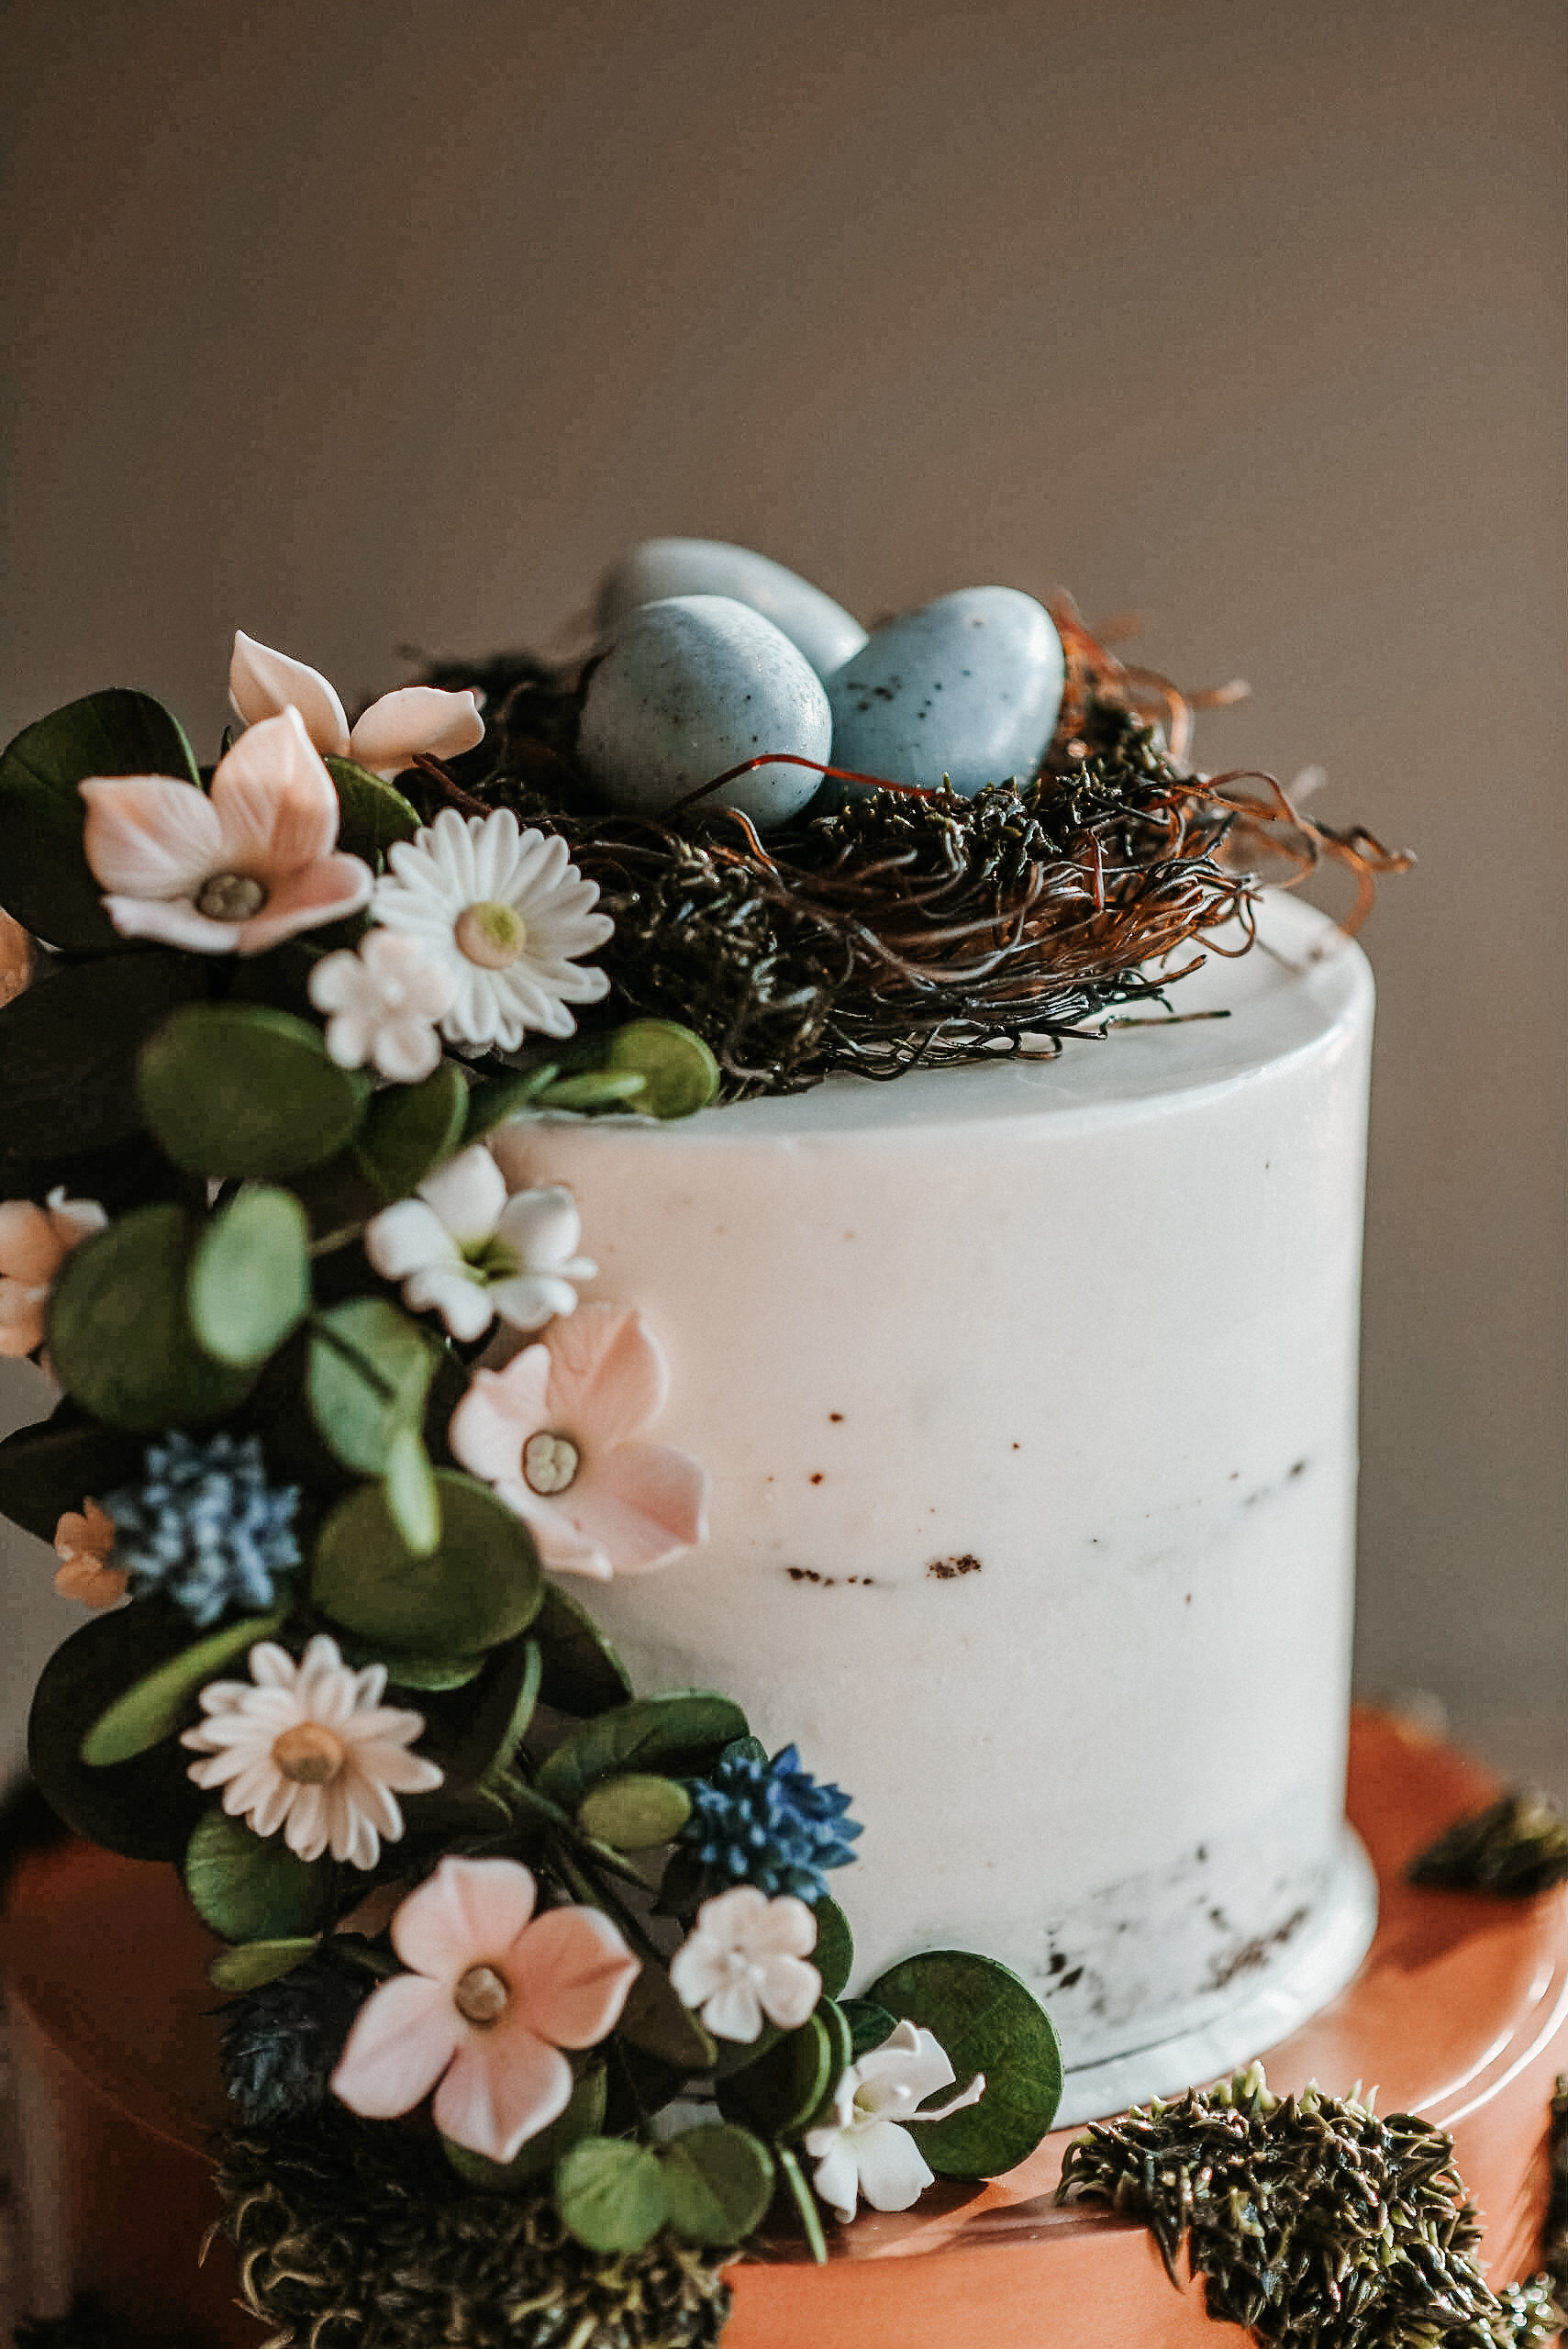 Top of wedding cake with robin's eggs